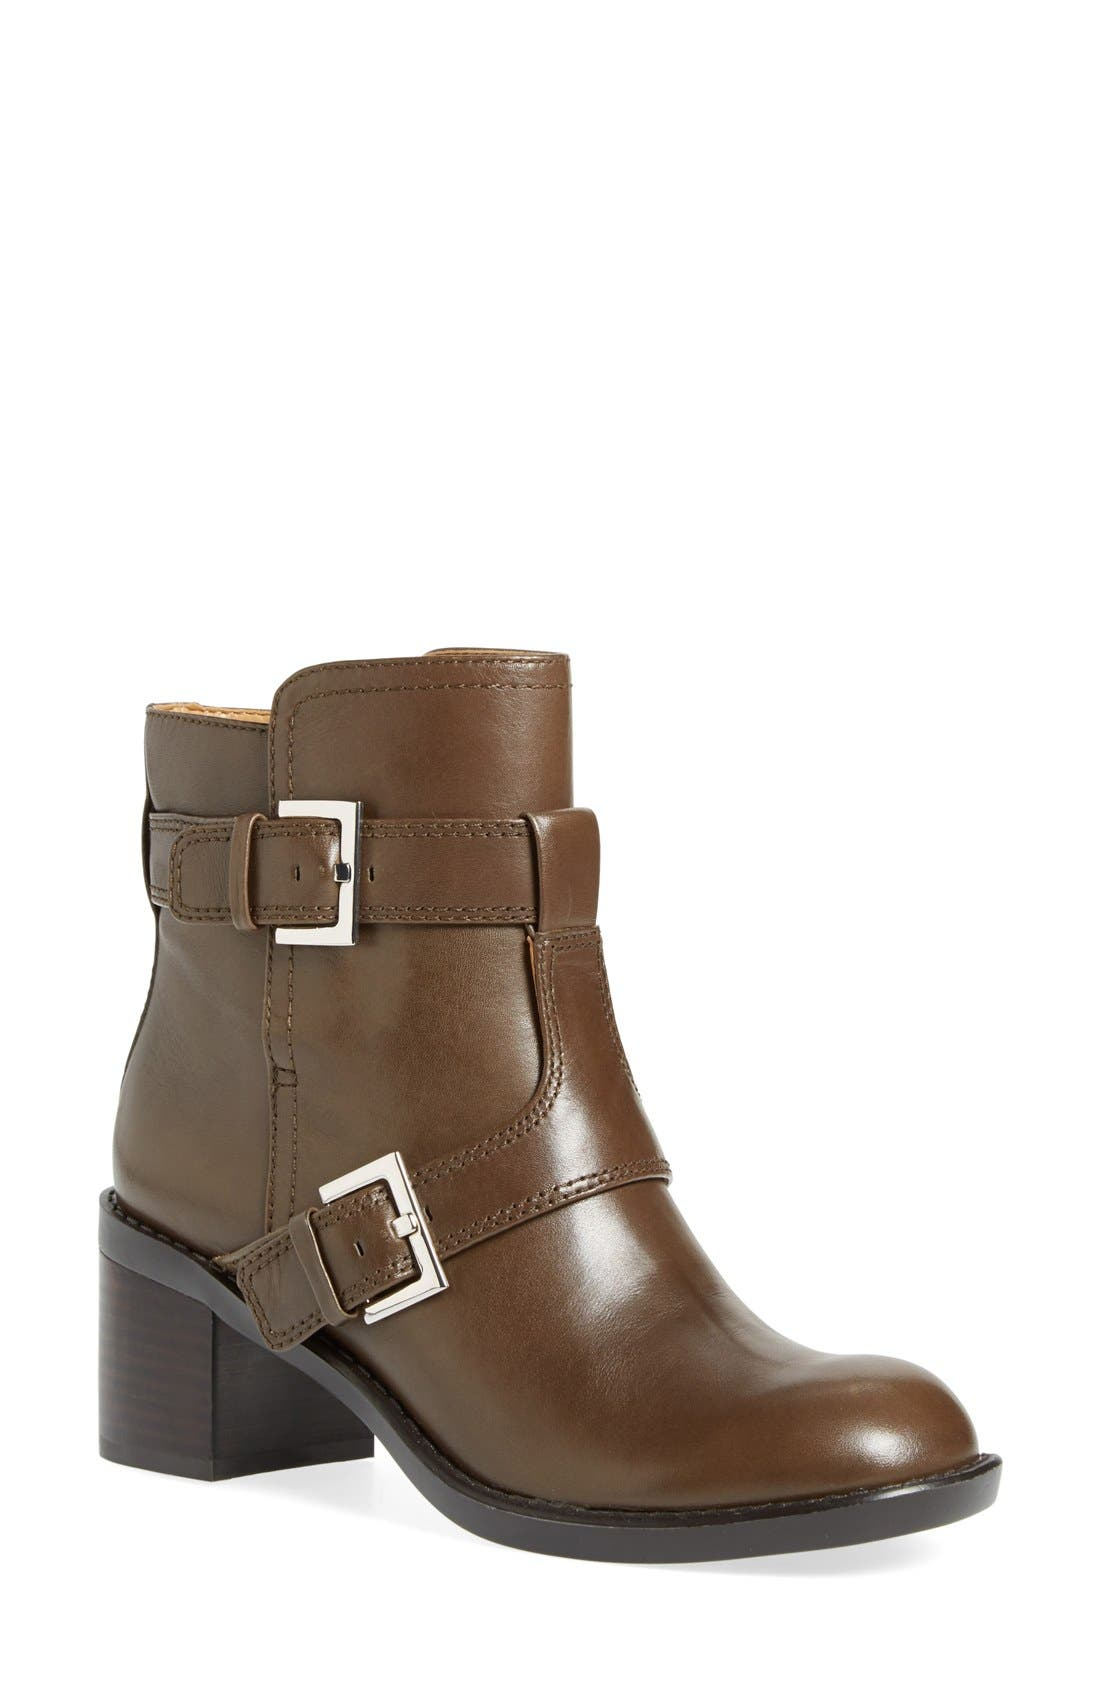 Alternate Image 1 Selected - Nine West 'Lorena' Buckle Mid Boot (Women)